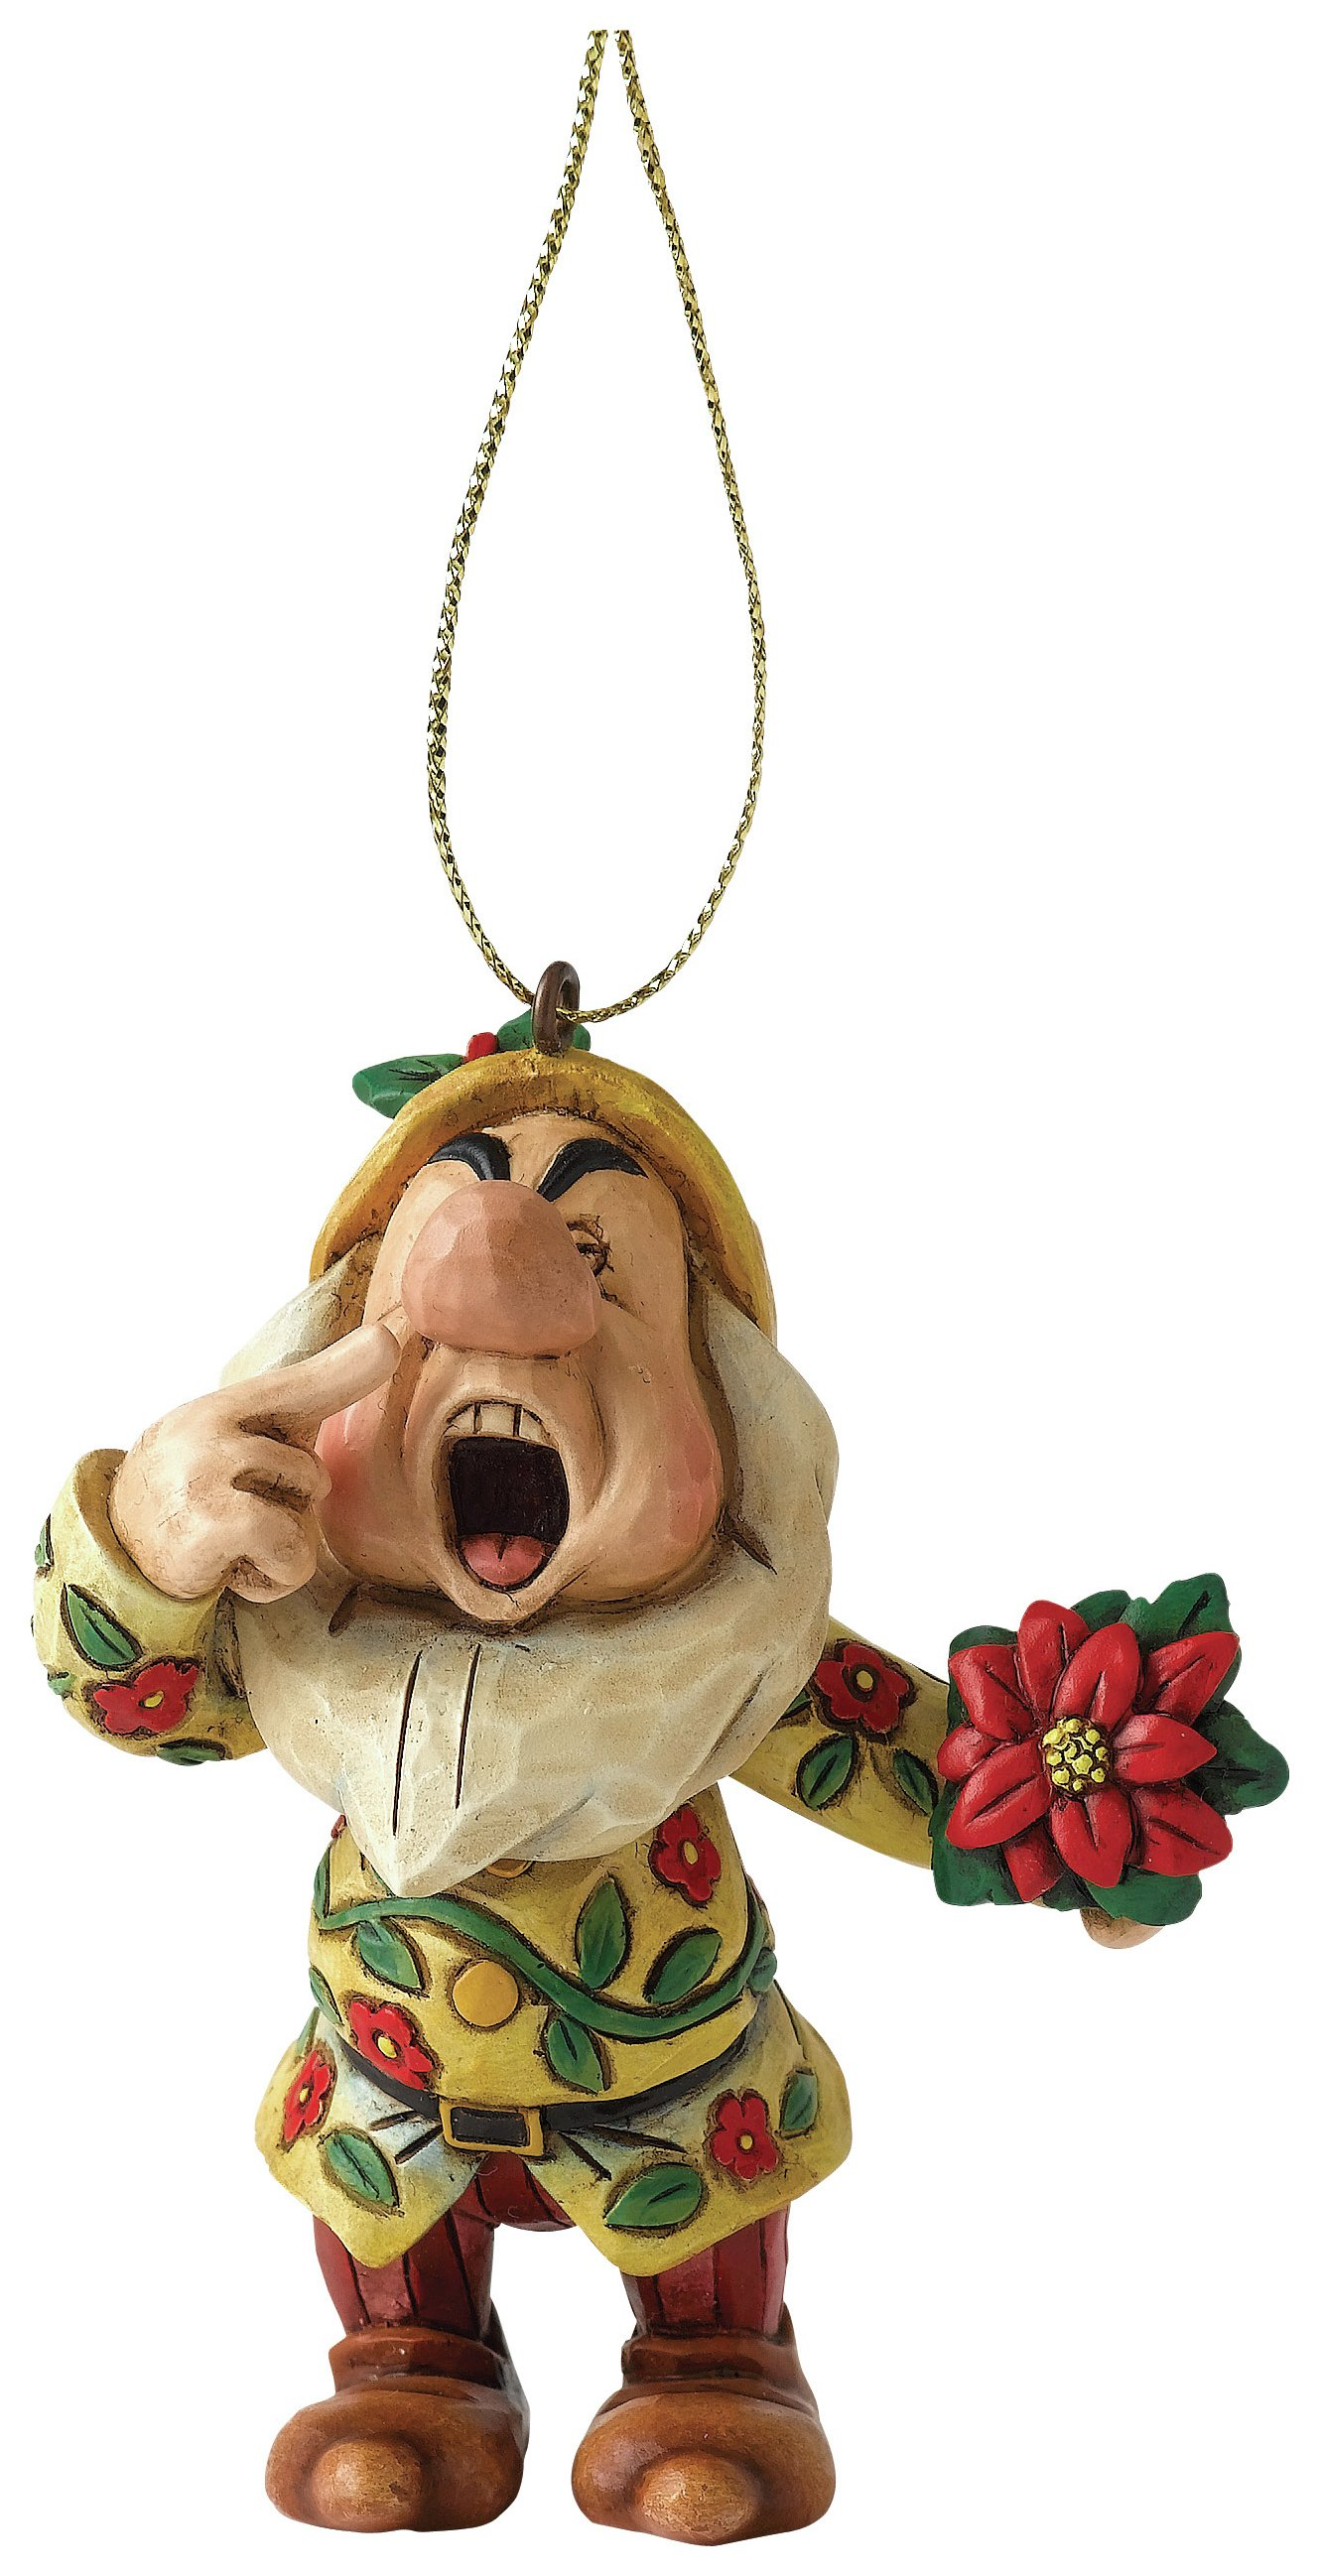 Image of Disney -Traditions Sneezy - Hanging Ornament